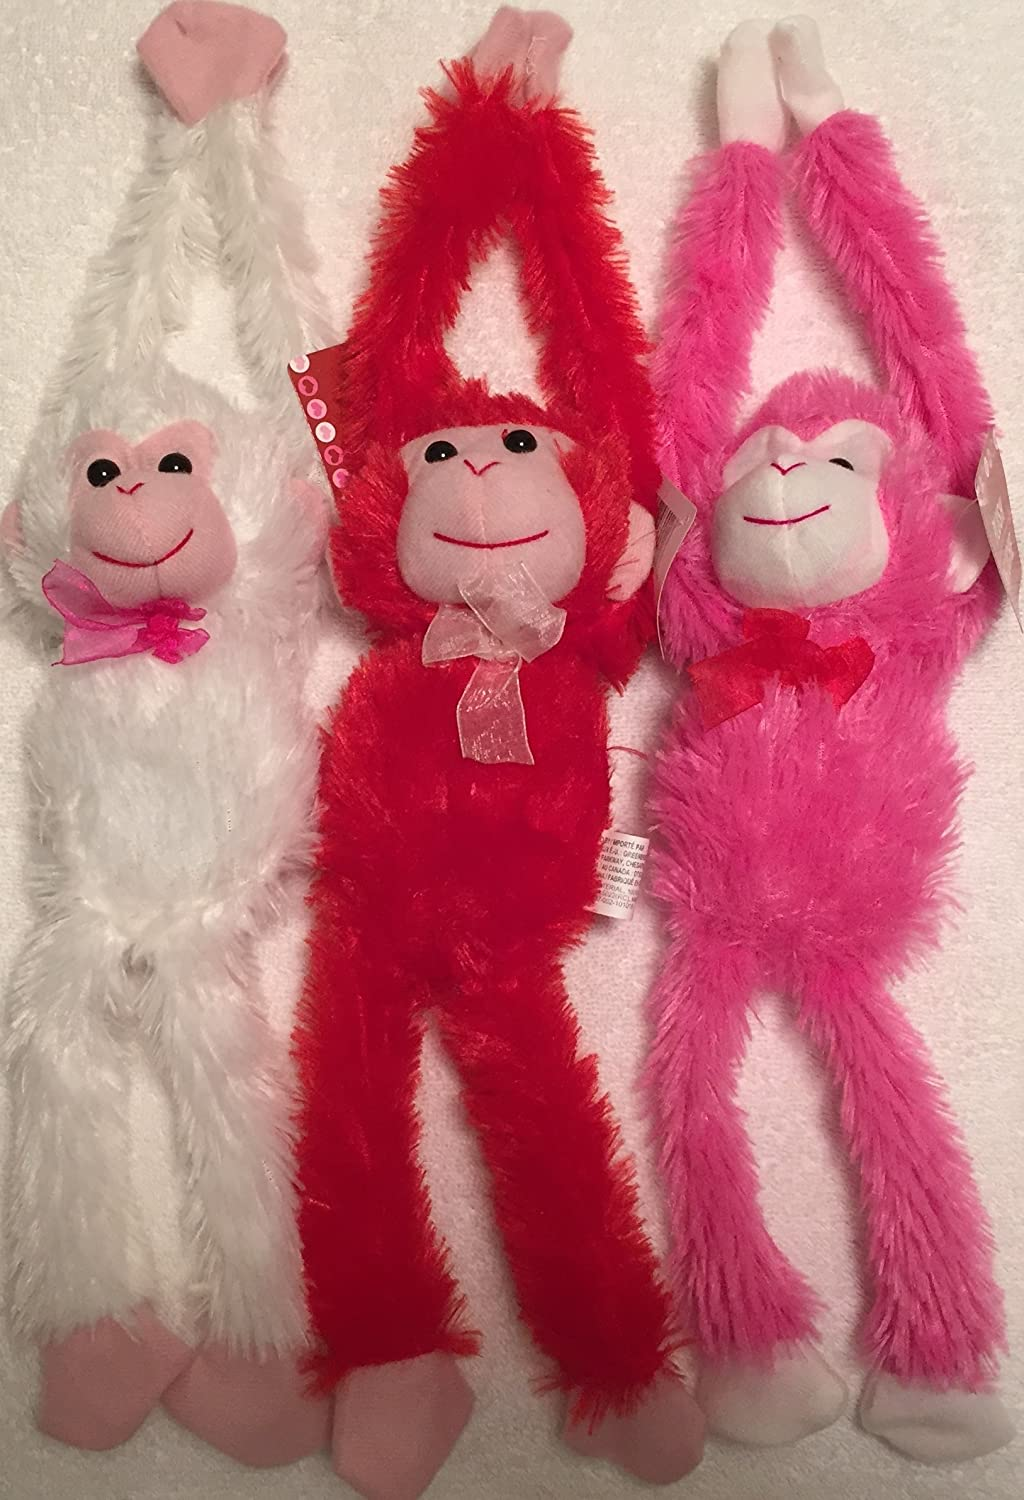 Valentine's Day plush animals monkeys